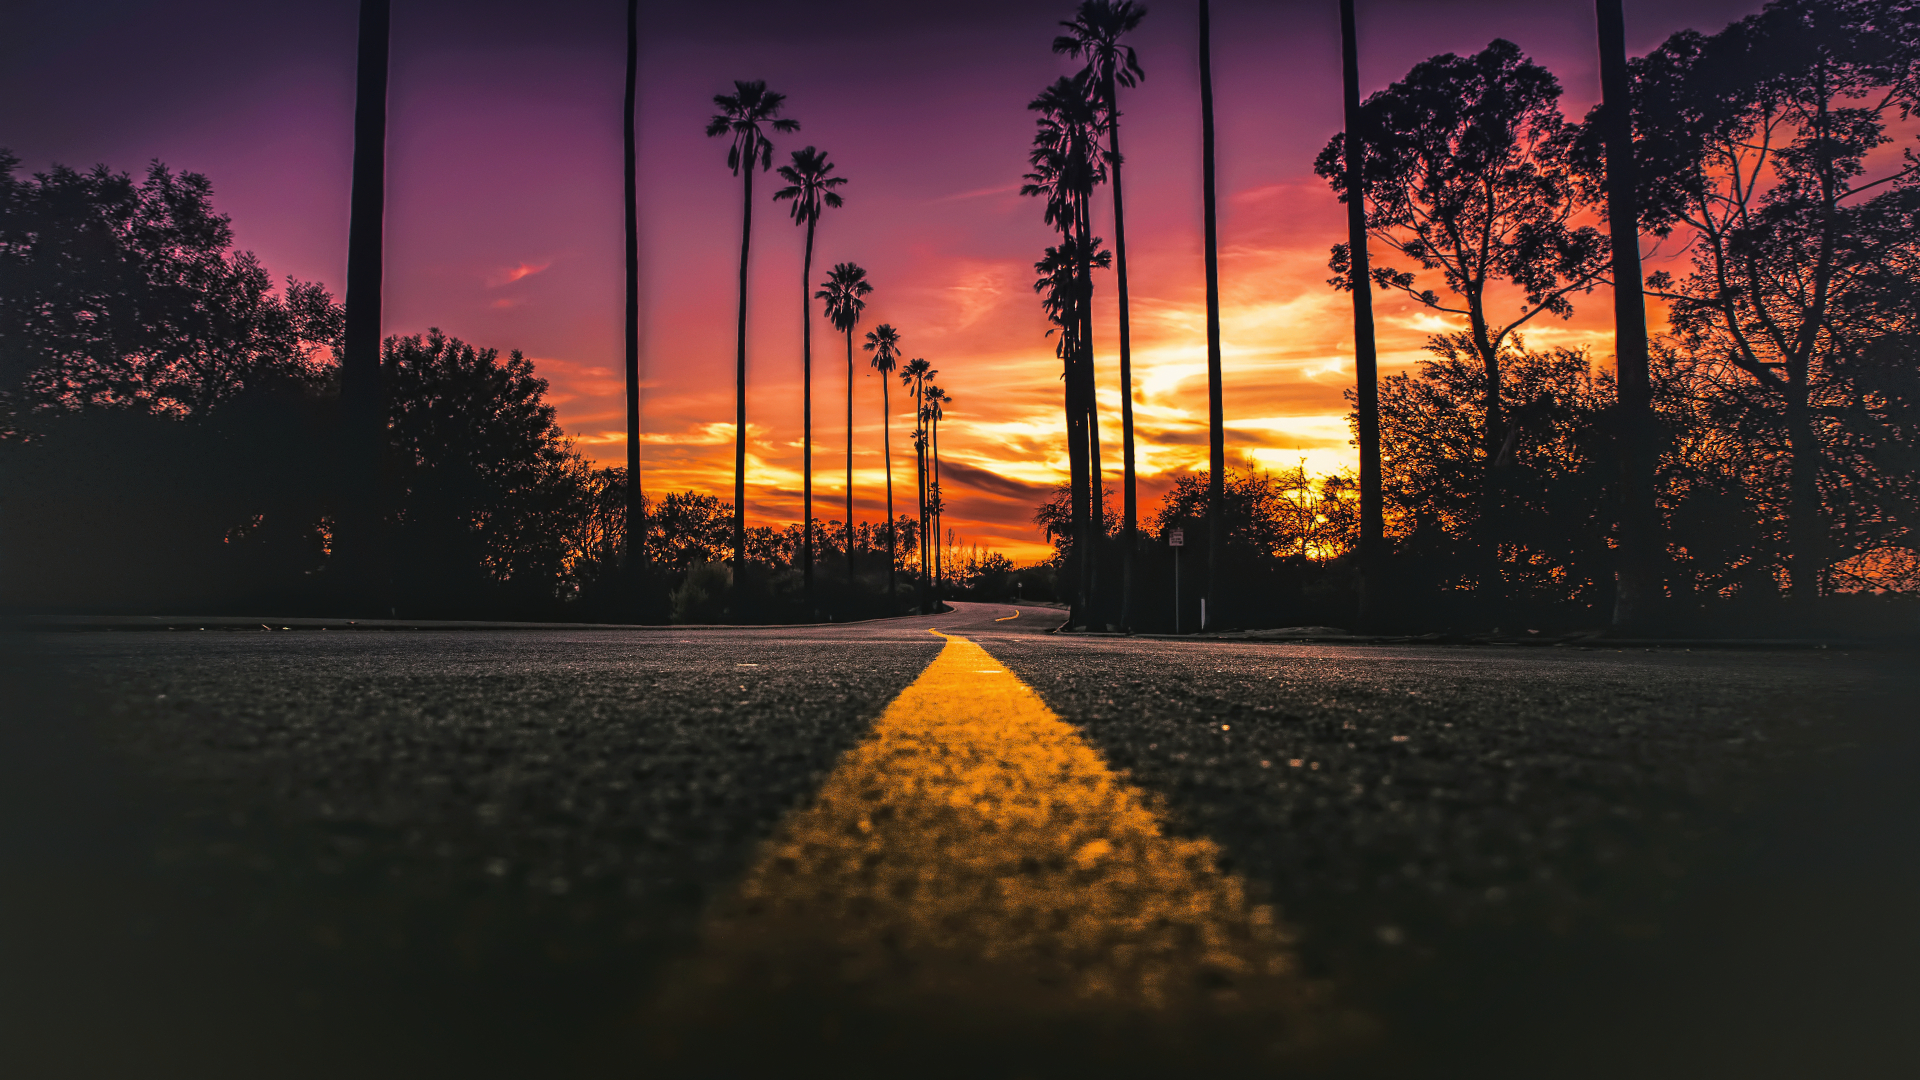 Download Usa California Road Sunlight Street View 360x640 Resolution